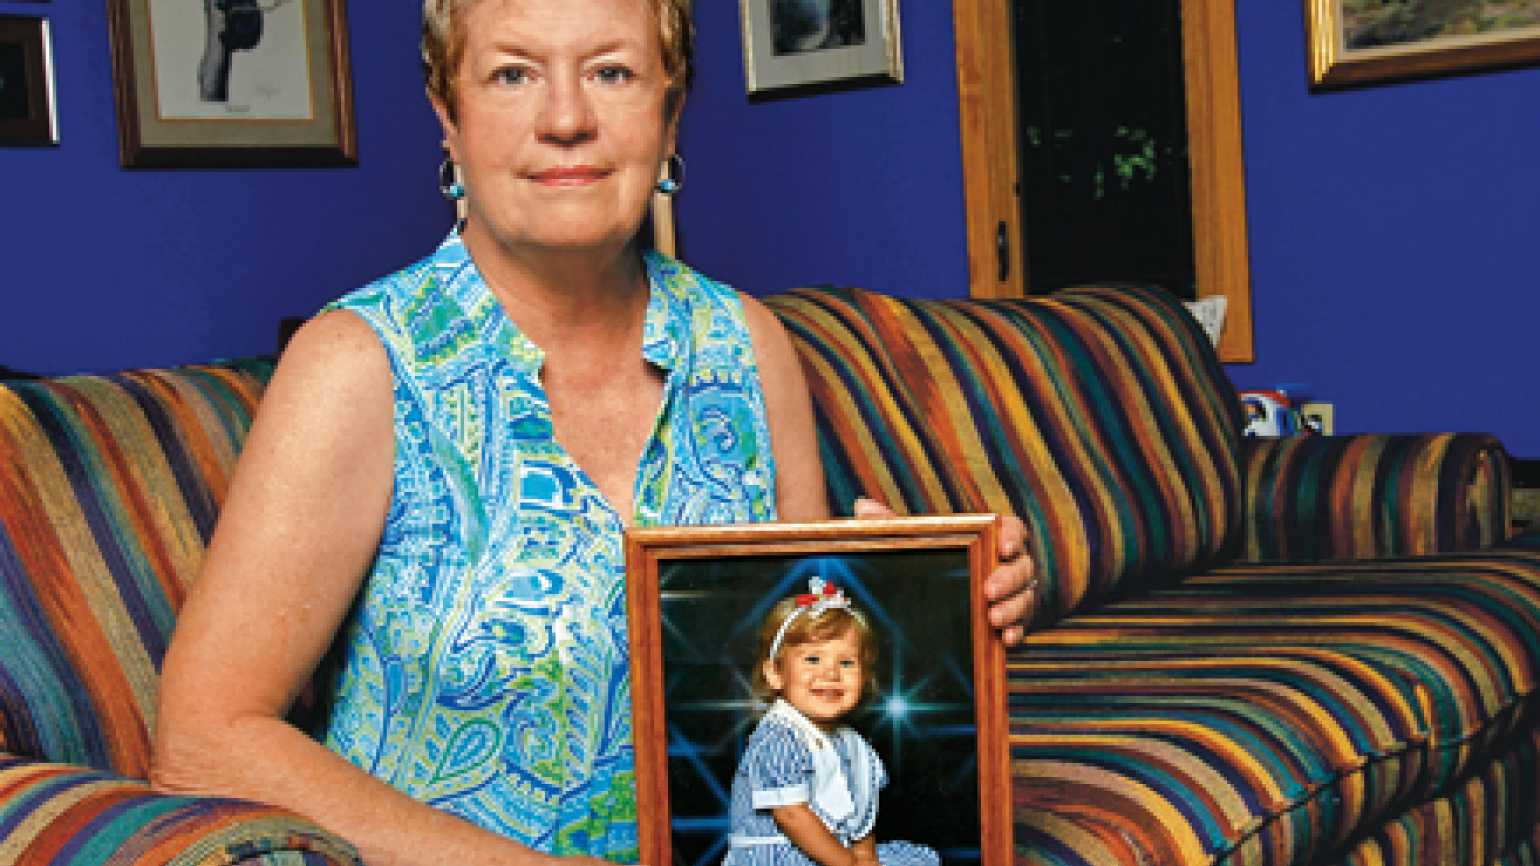 Julie Burns with a photograph of her granddaughter Paige